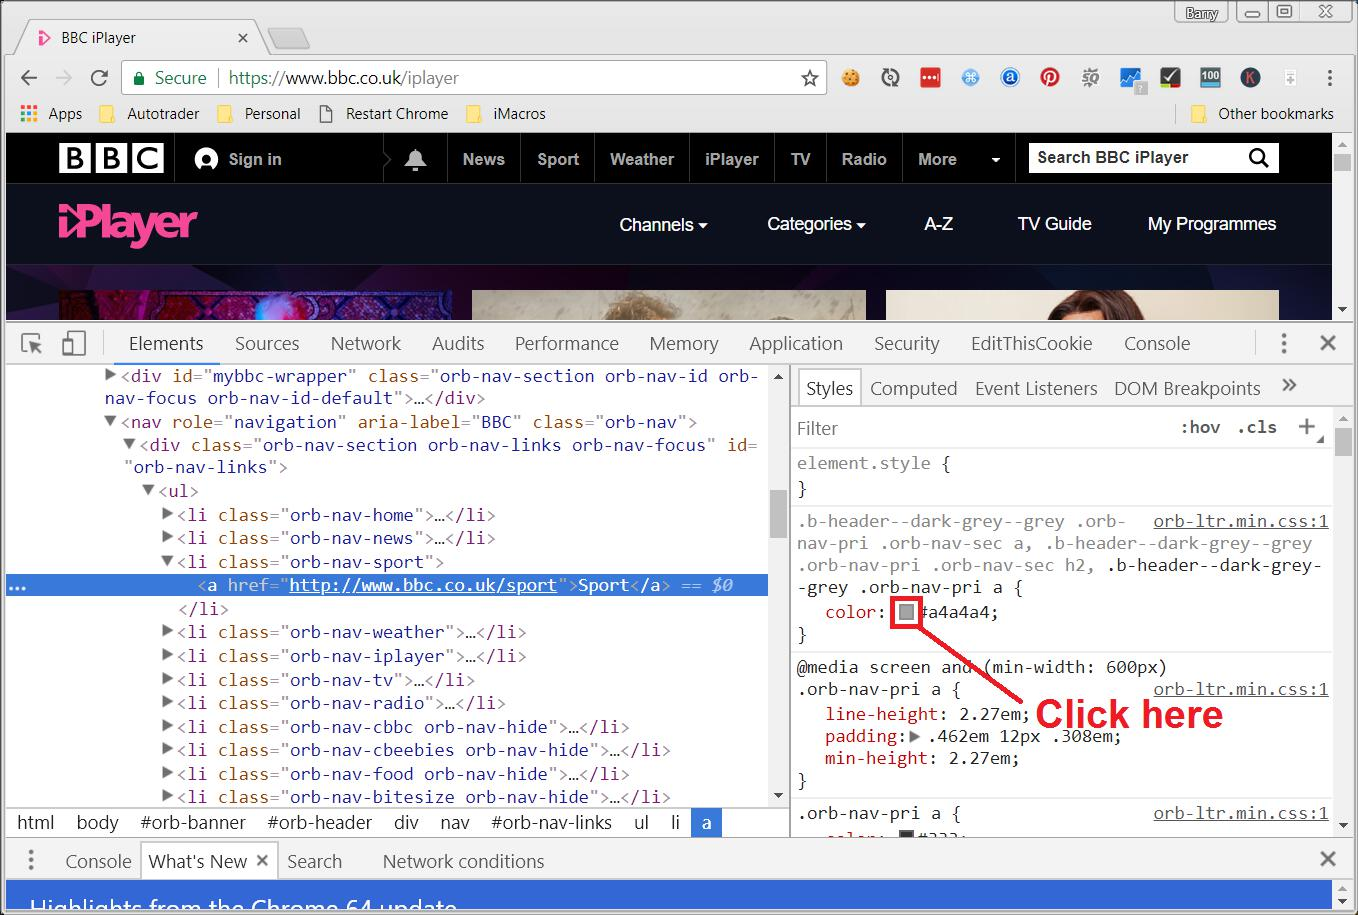 Finding CSS color in devtools